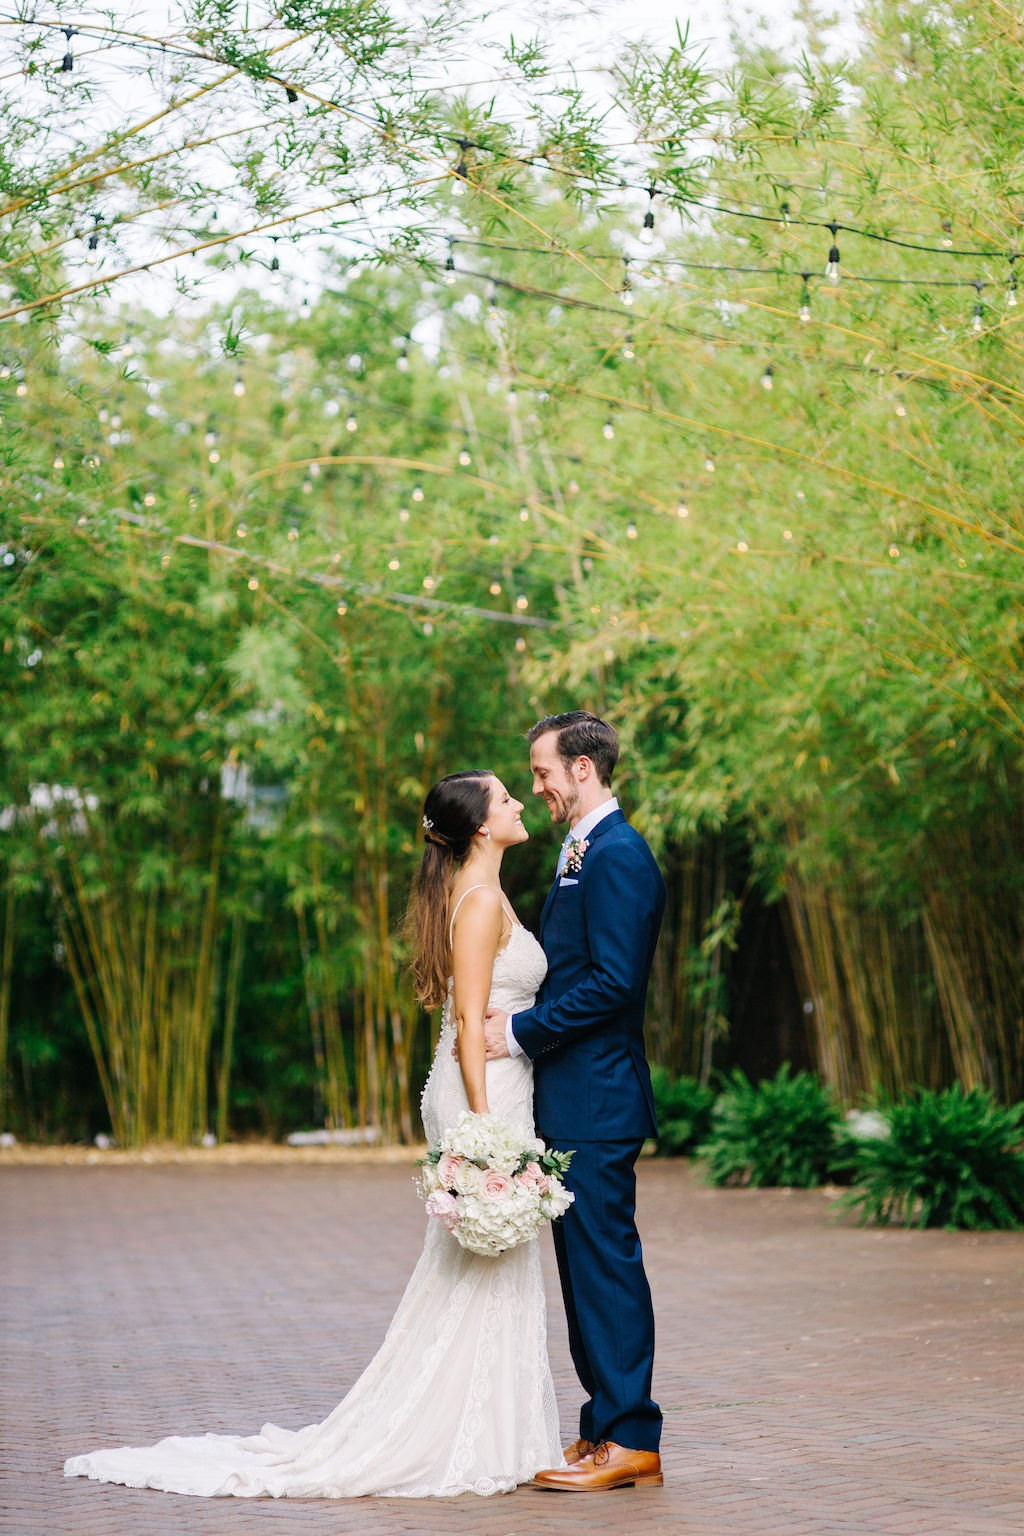 Modern, Florida Bride and Groom in Outdoor Bamboo Courtyard, | Downtown St. Pete Unique Wedding Venue NOVA 535